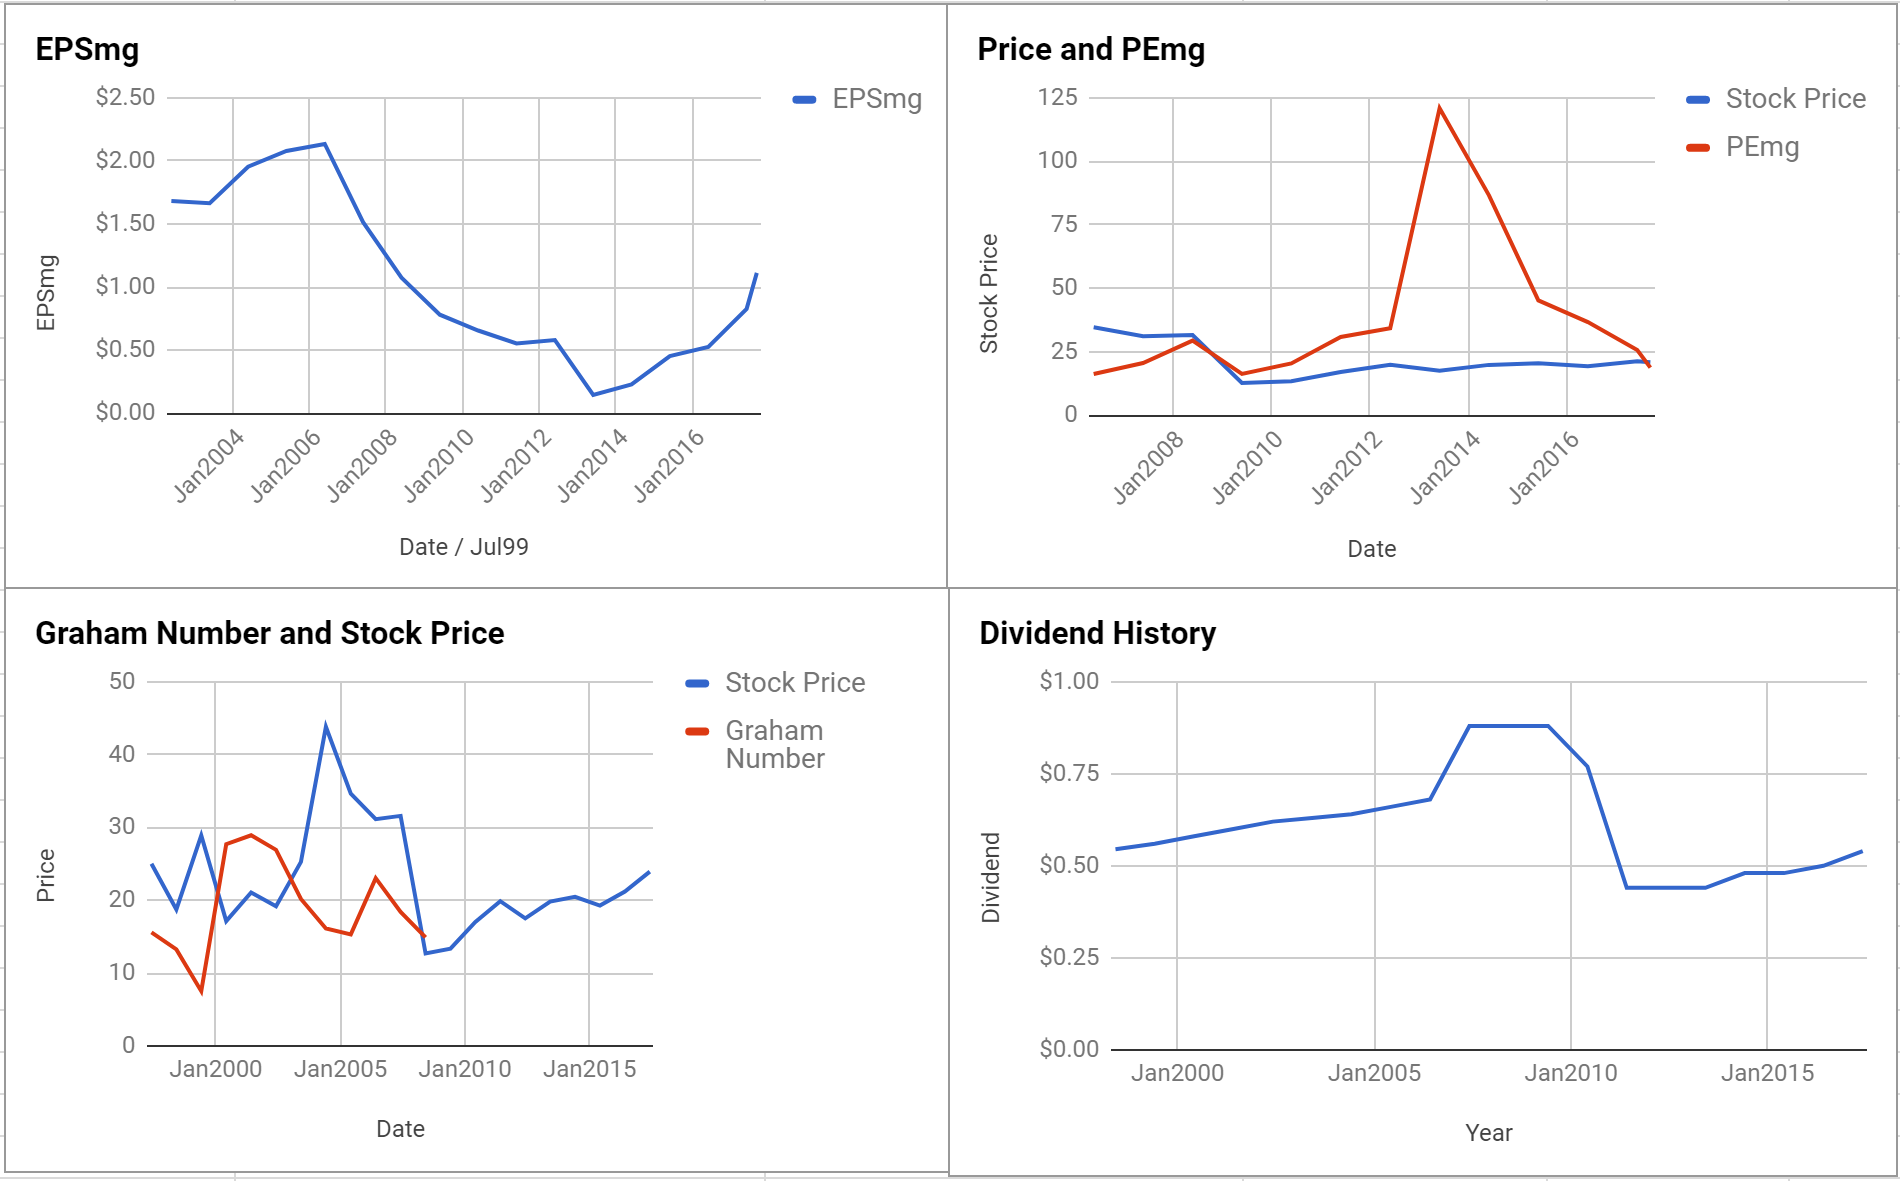 Briggs & Stratton Corp Valuation – Initial Coverage $BGG